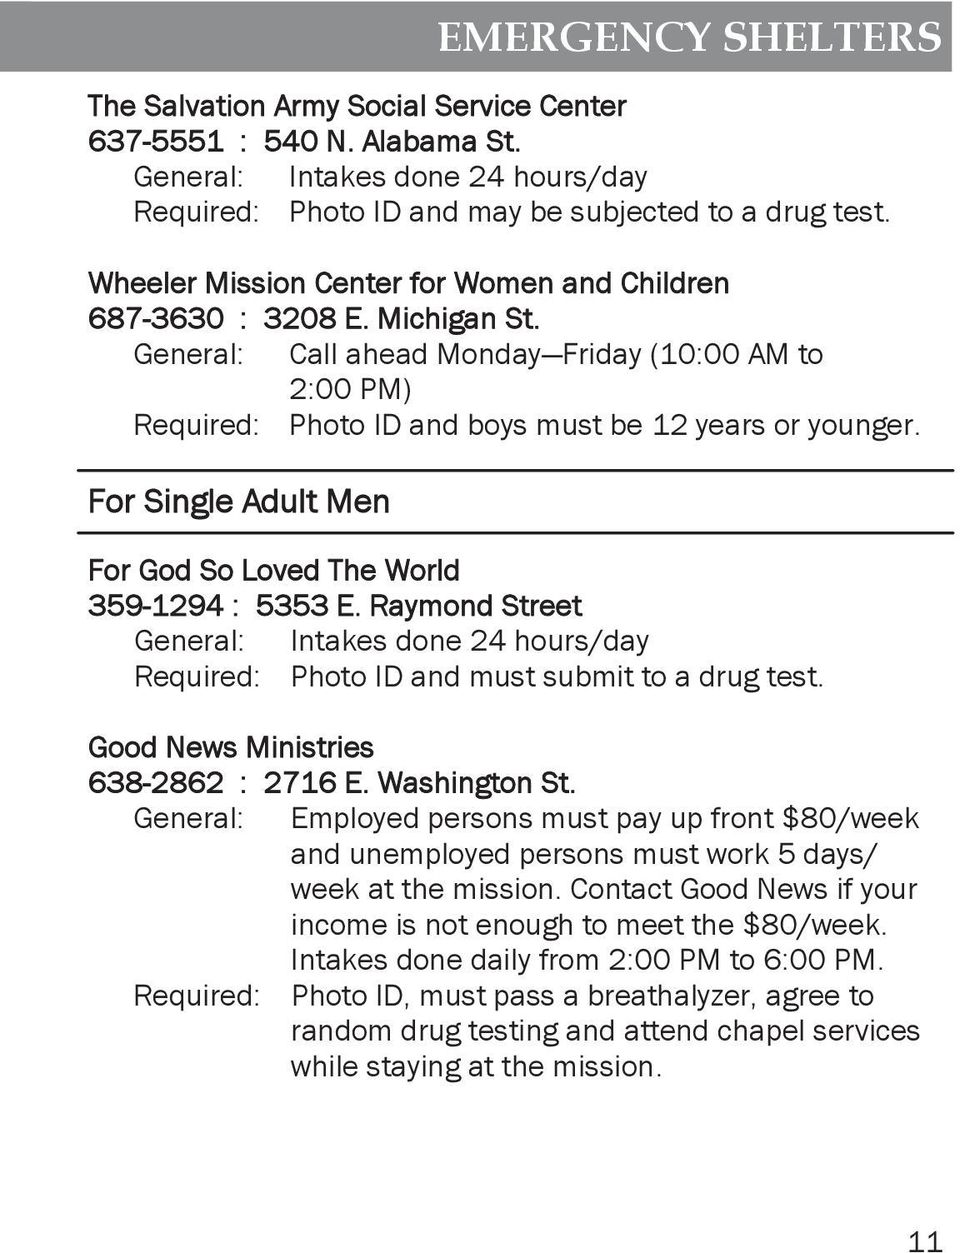 For Single Adult Men For God So Loved The World 359-1294 : 5353 E. Raymond Street General: Intakes done 24 hours/day Required: Photo ID and must submit to a drug test.